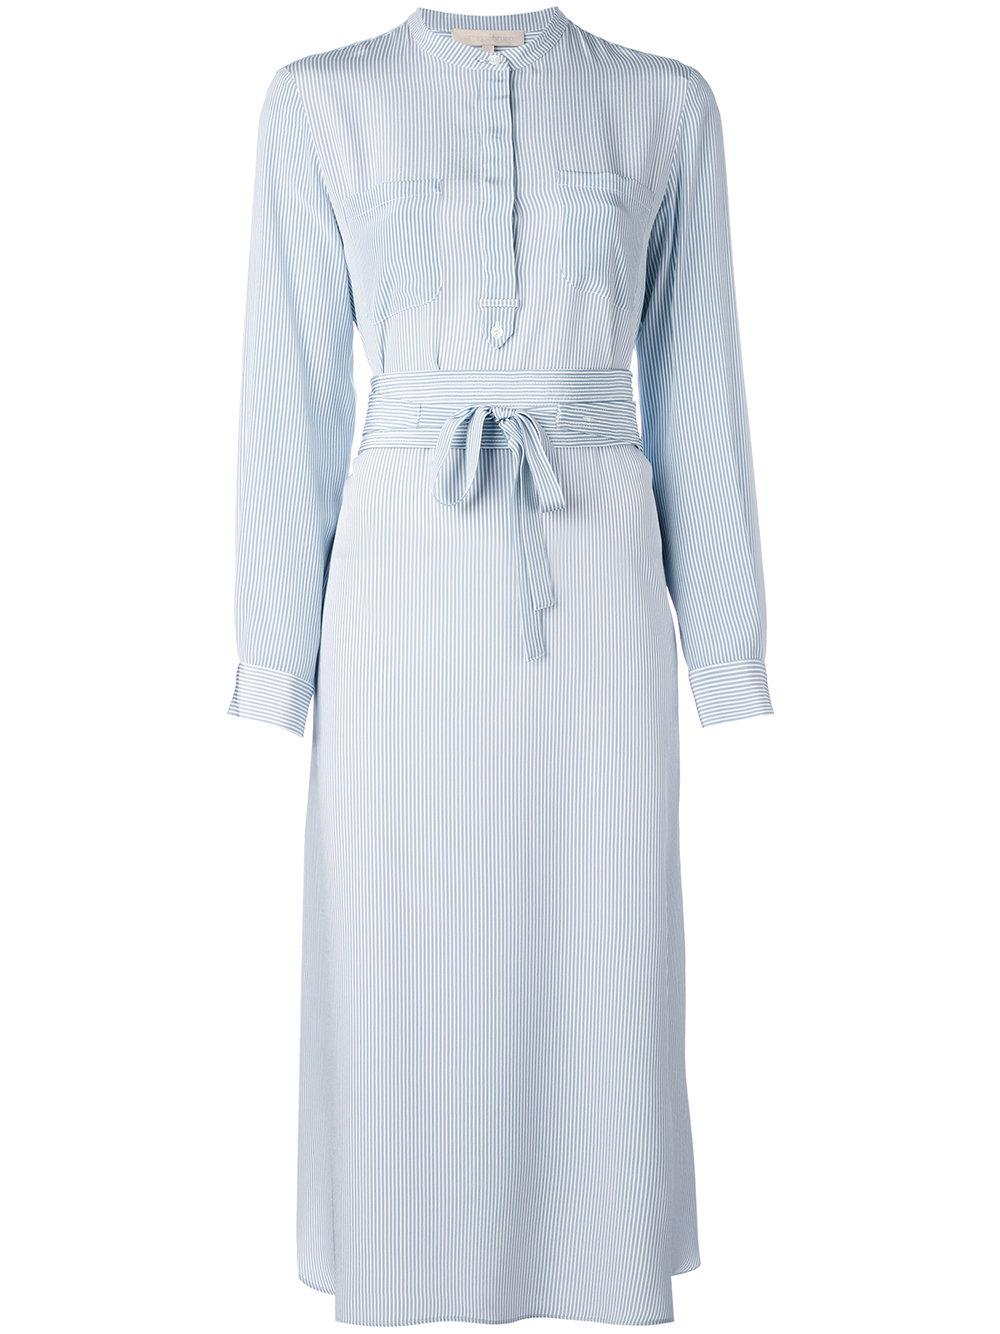 Lyst vanessa bruno belted pinstripe midi shirt dress in blue for Light blue pinstripe shirt